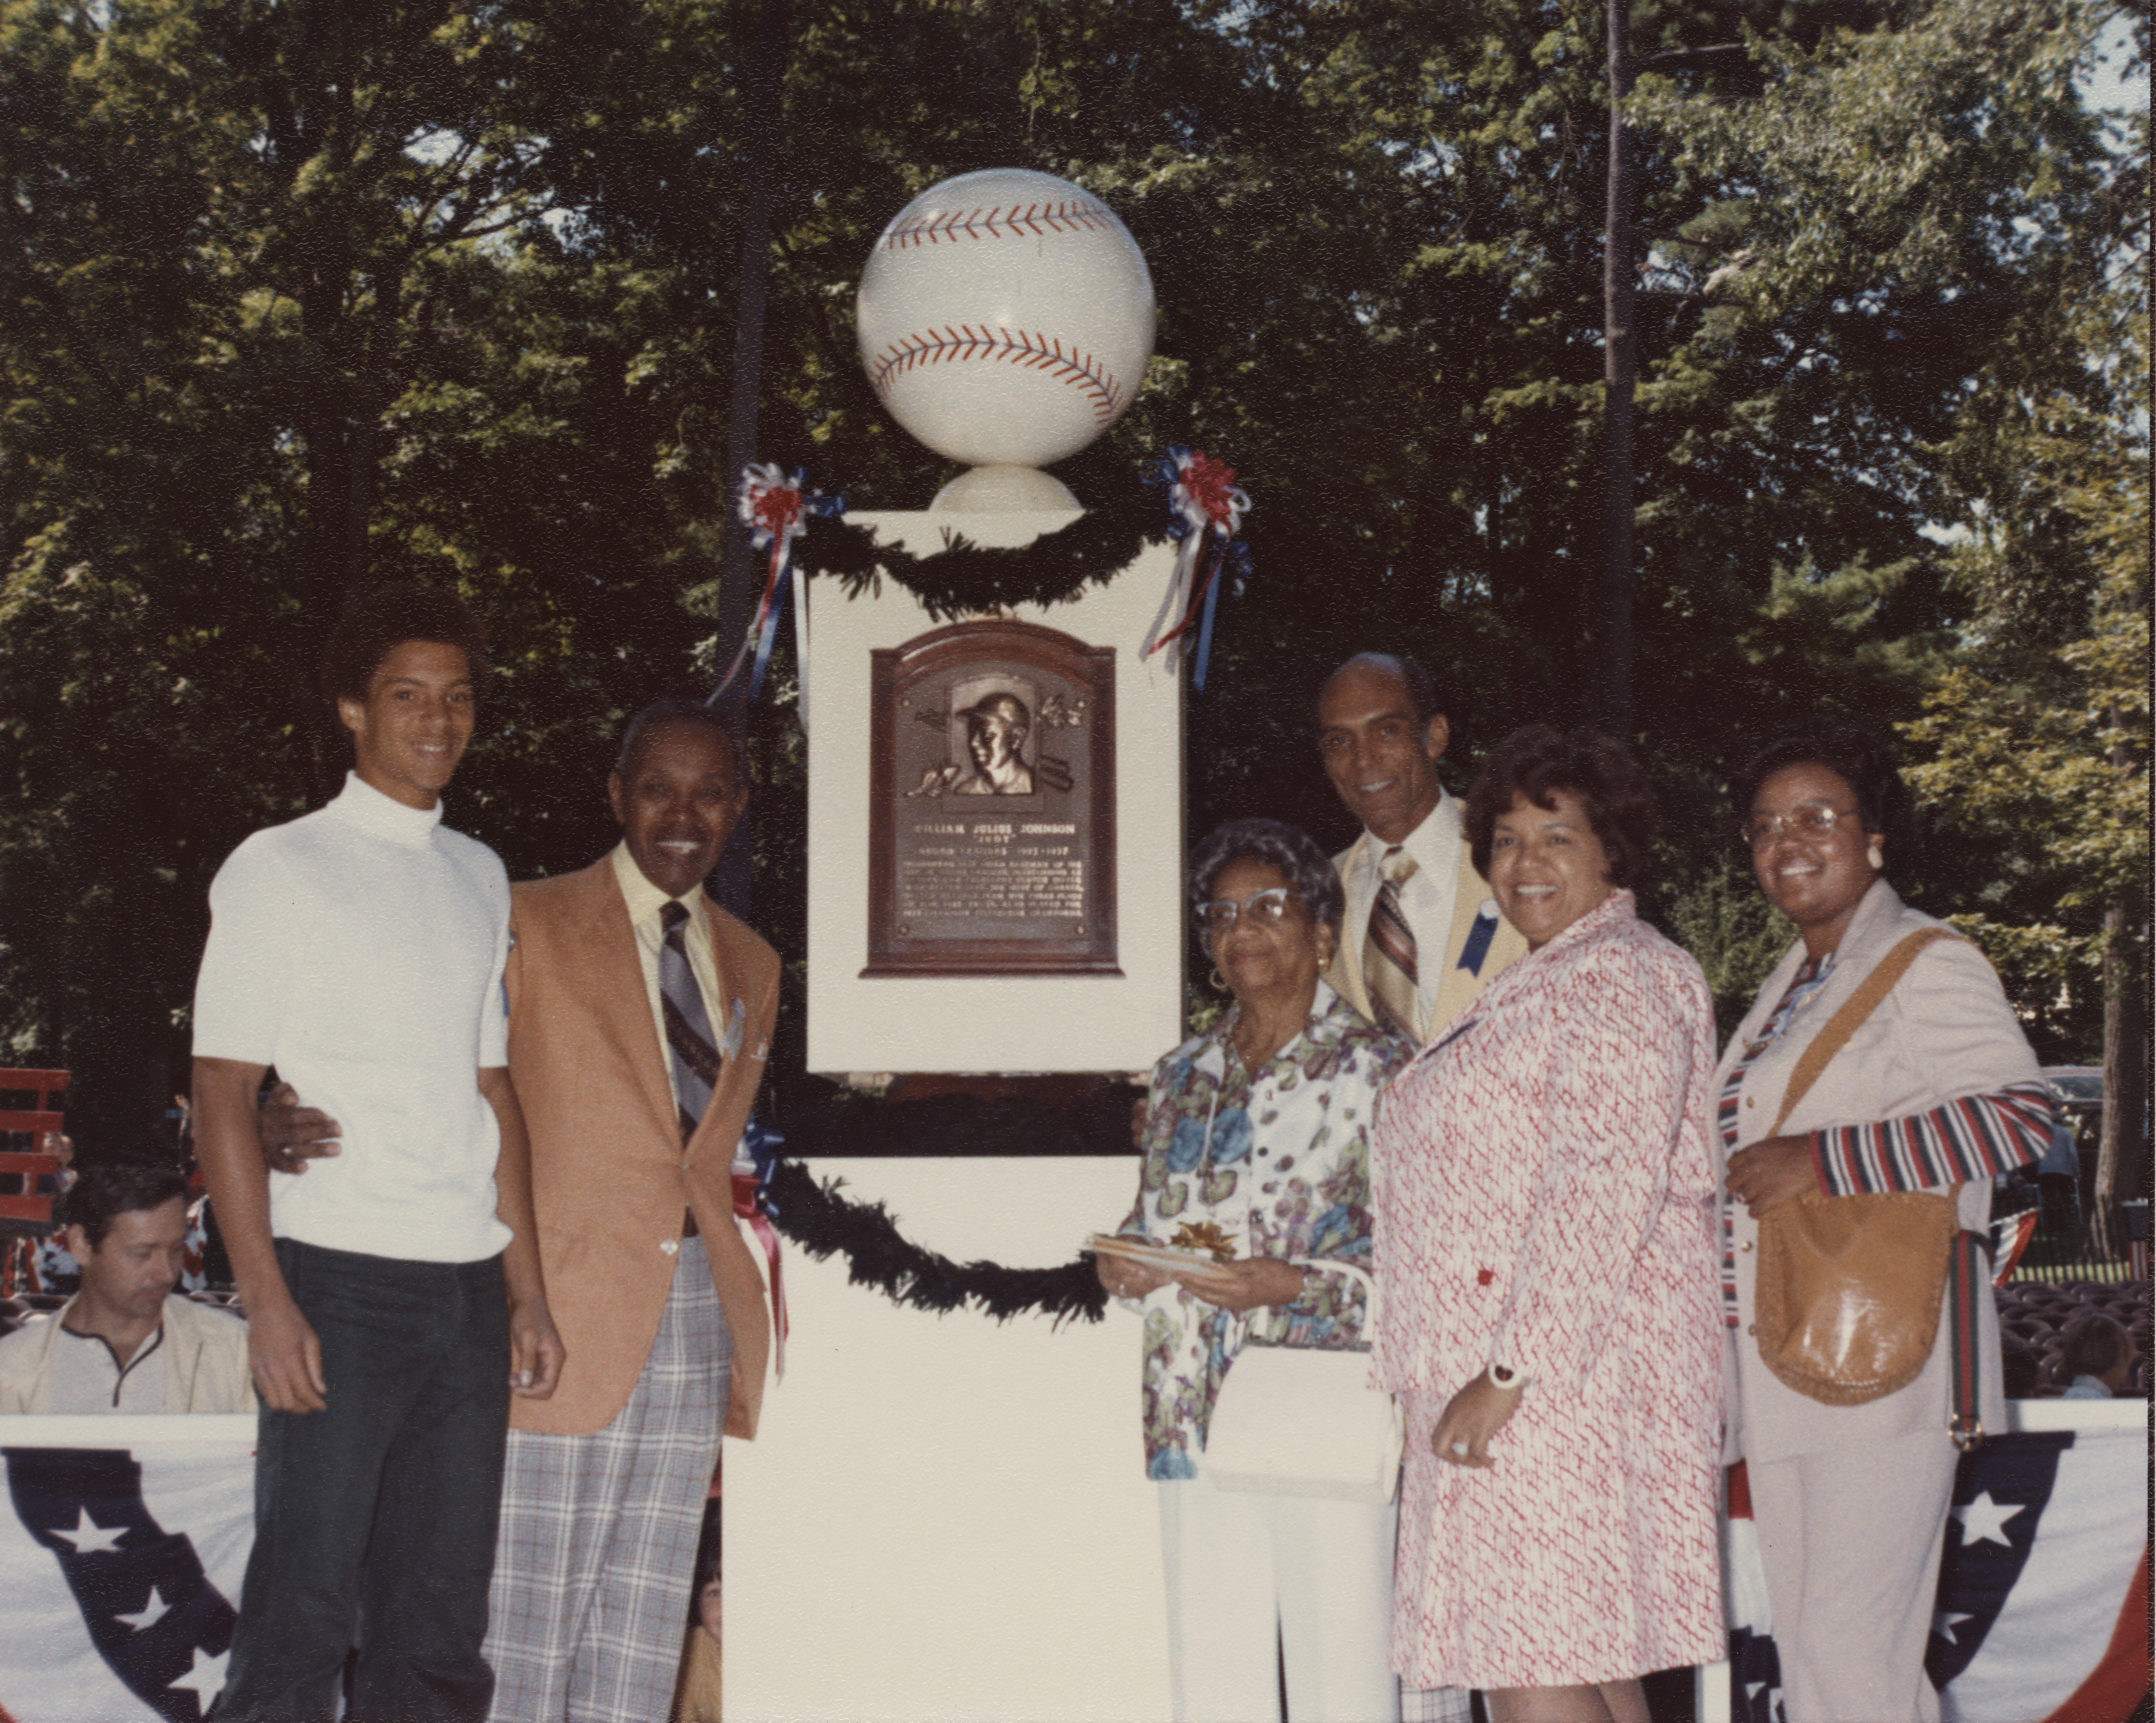 judy johnson elected to the hall of fame baseball hall of fame judy johnson standing in front of his plaque family members bl 549 2012 25 national baseball hall of fame library